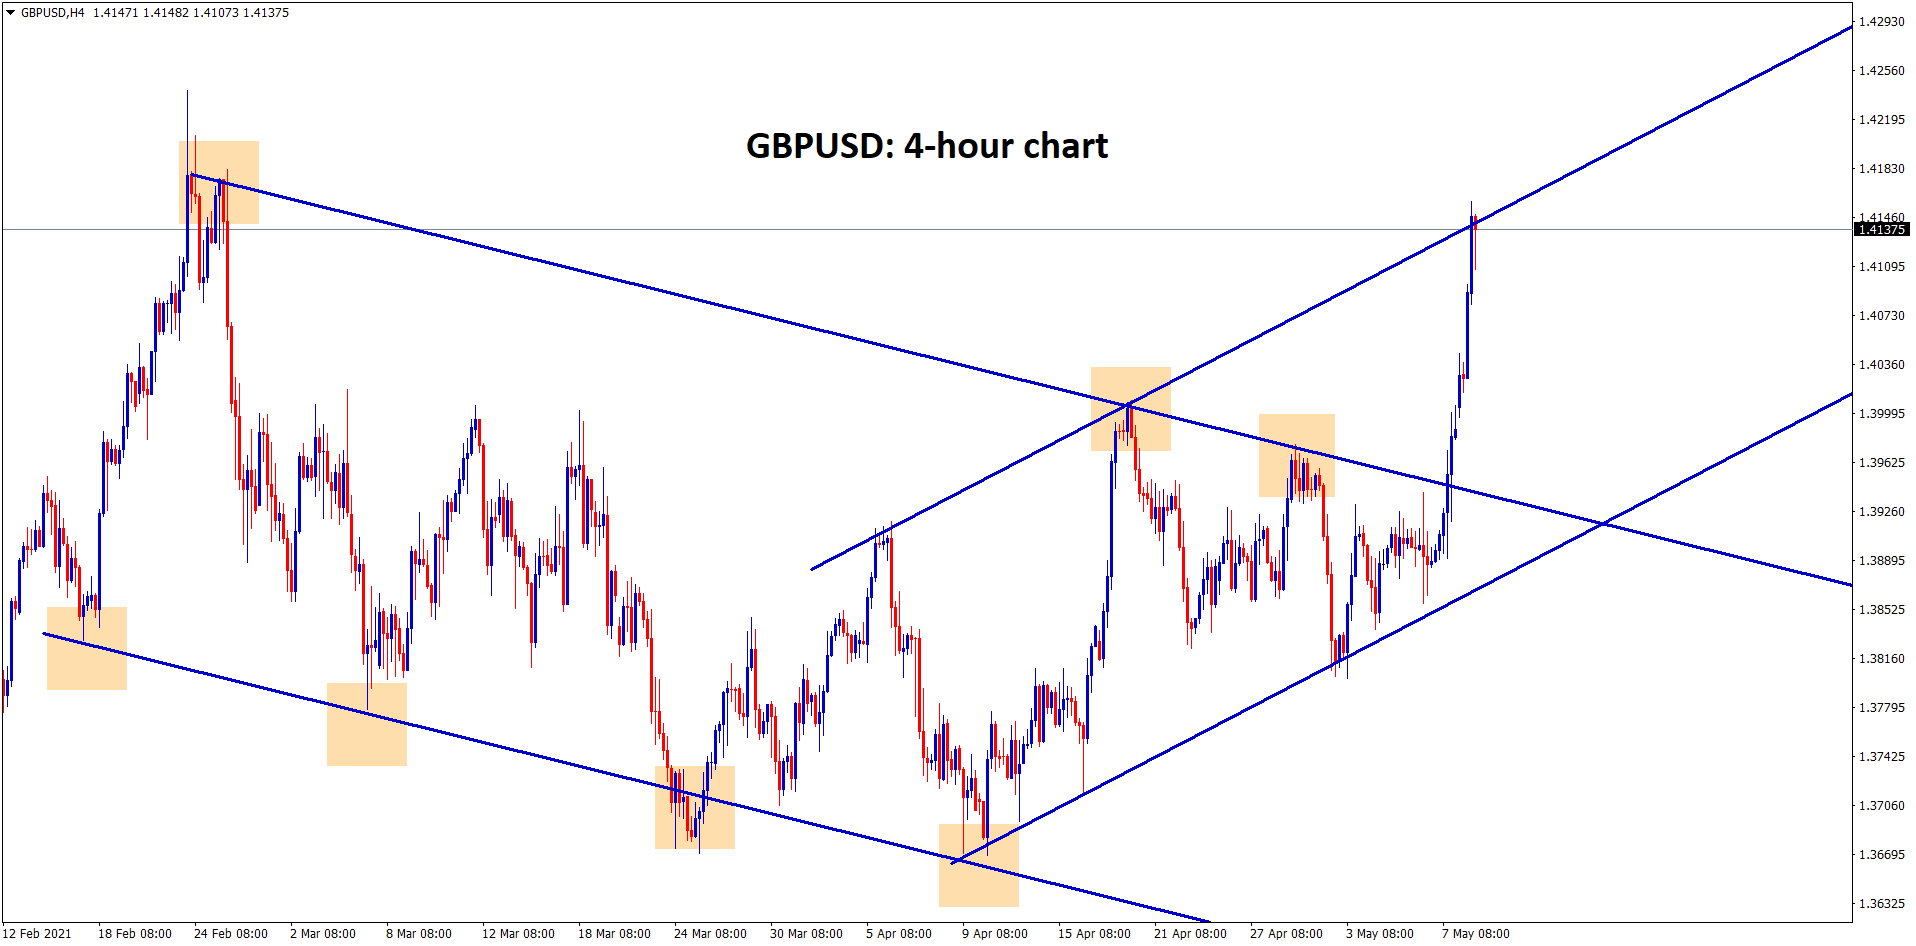 GBPUSD broken the descending channel and reached the high of an uptrend line GBP is moving in strong uptrend.